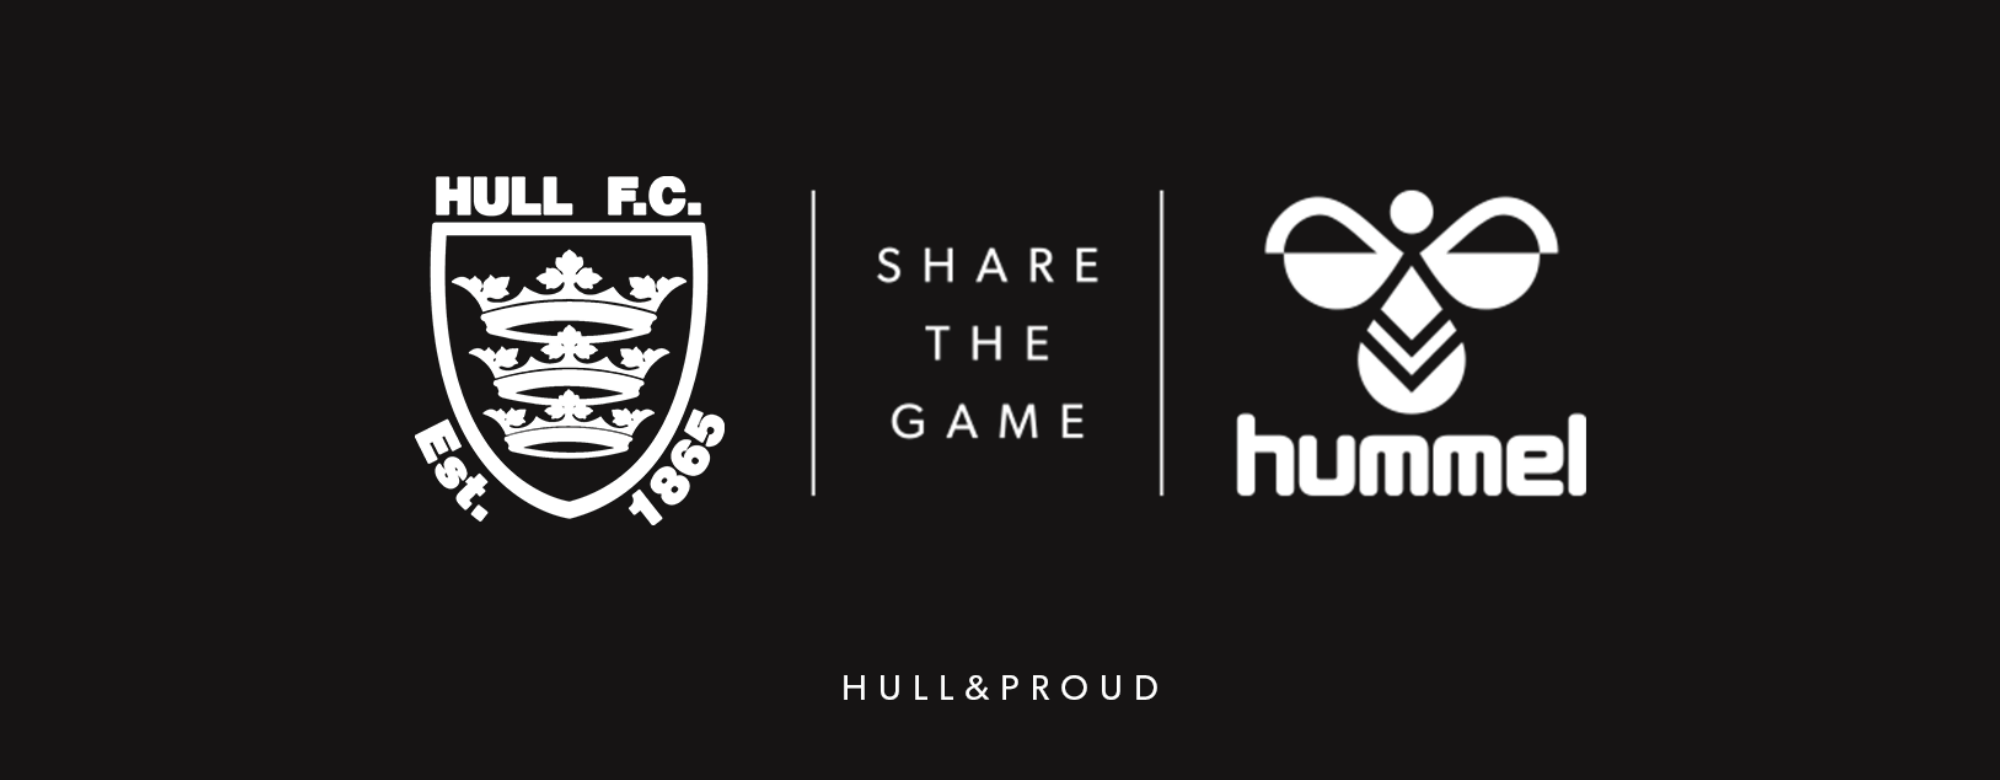 Hull FC Announce Record Deal With hummel®